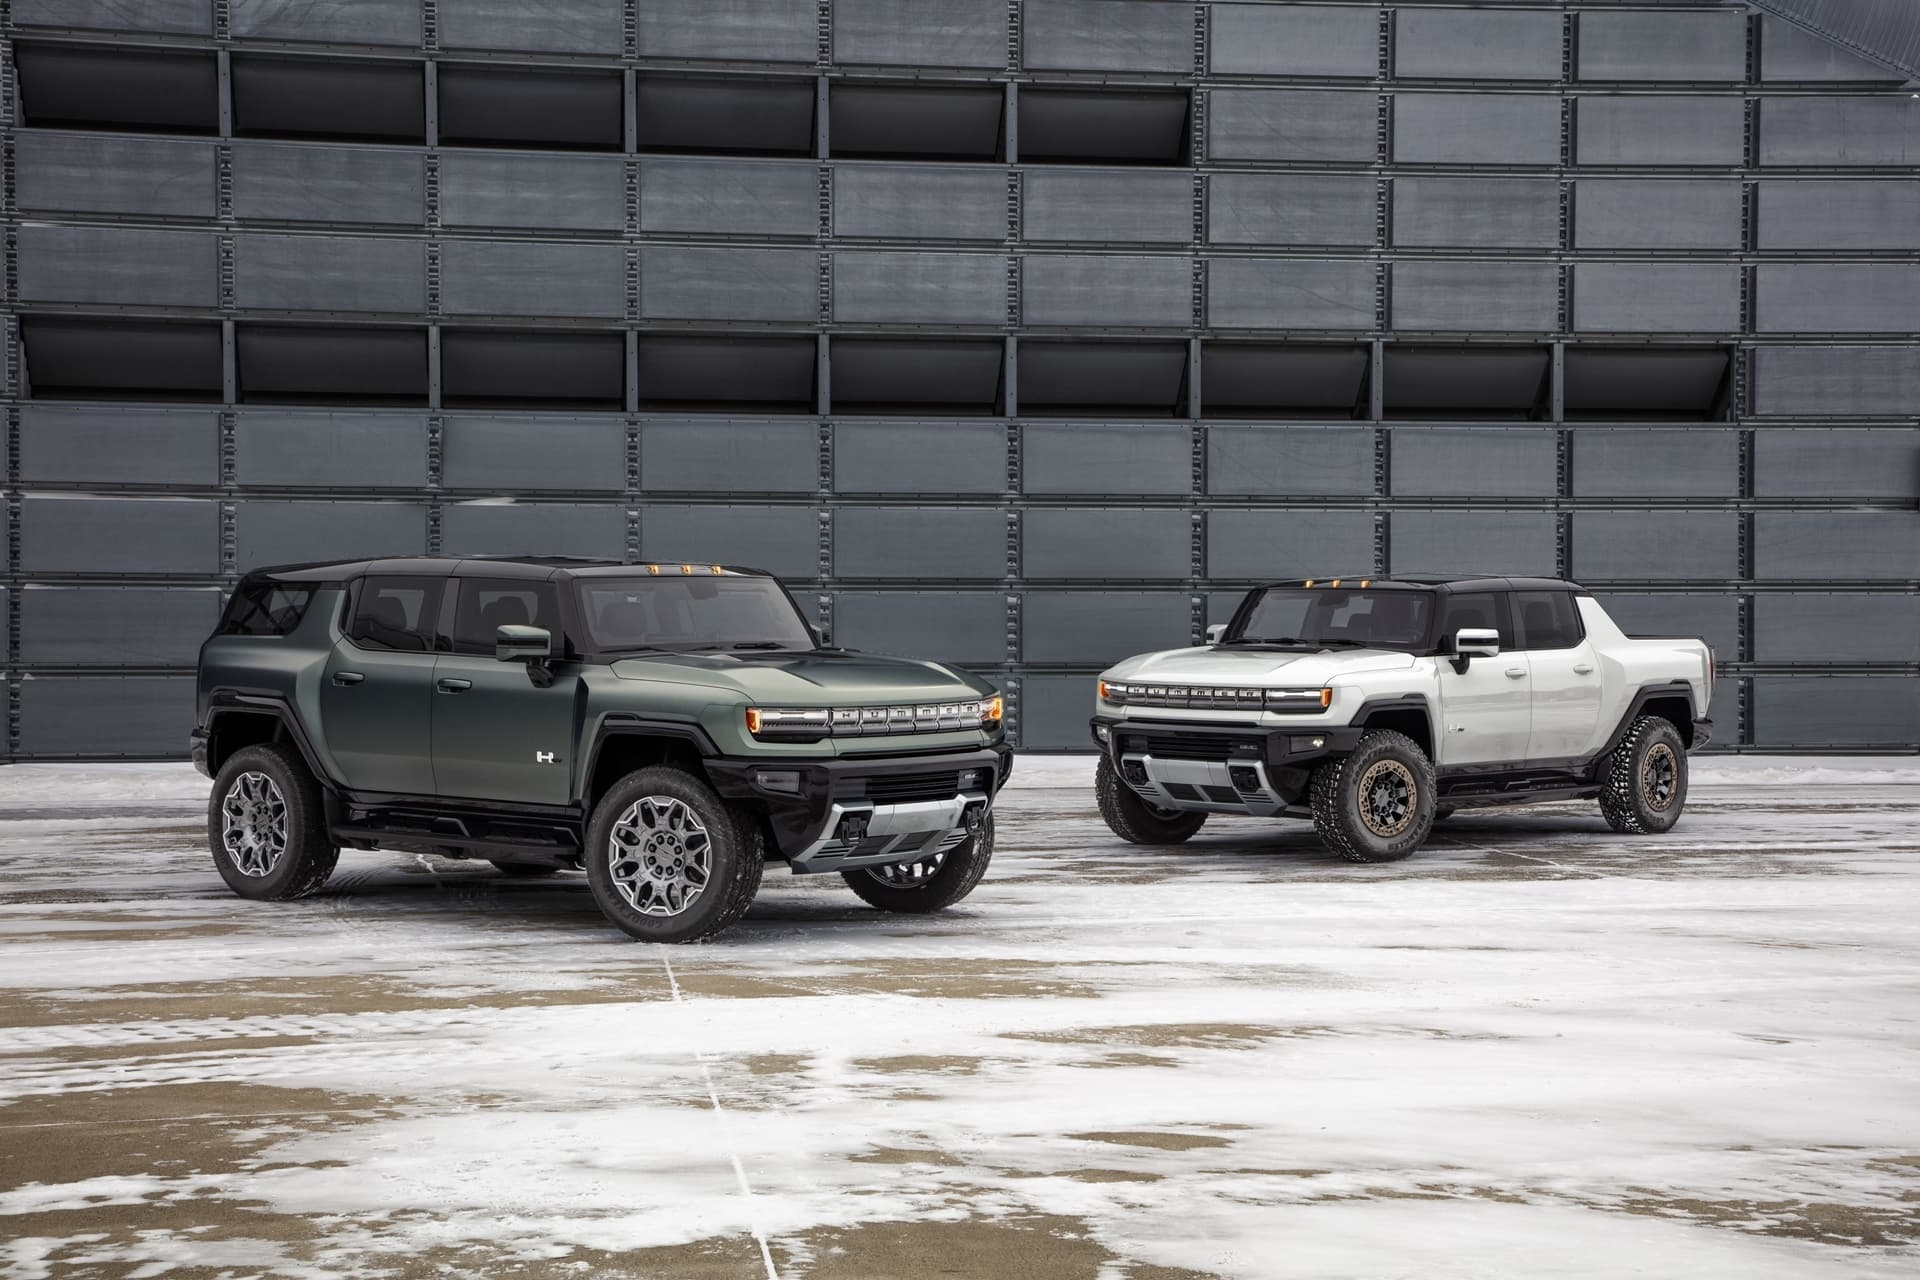 The Gmc Hummer Ev Suv Completes The Hummer Ev Family And Features A 126.7 Inch Wheelbase For Tight Proportions And A Maneuverable Body, Providing Remarkable On And Off Road Capability.